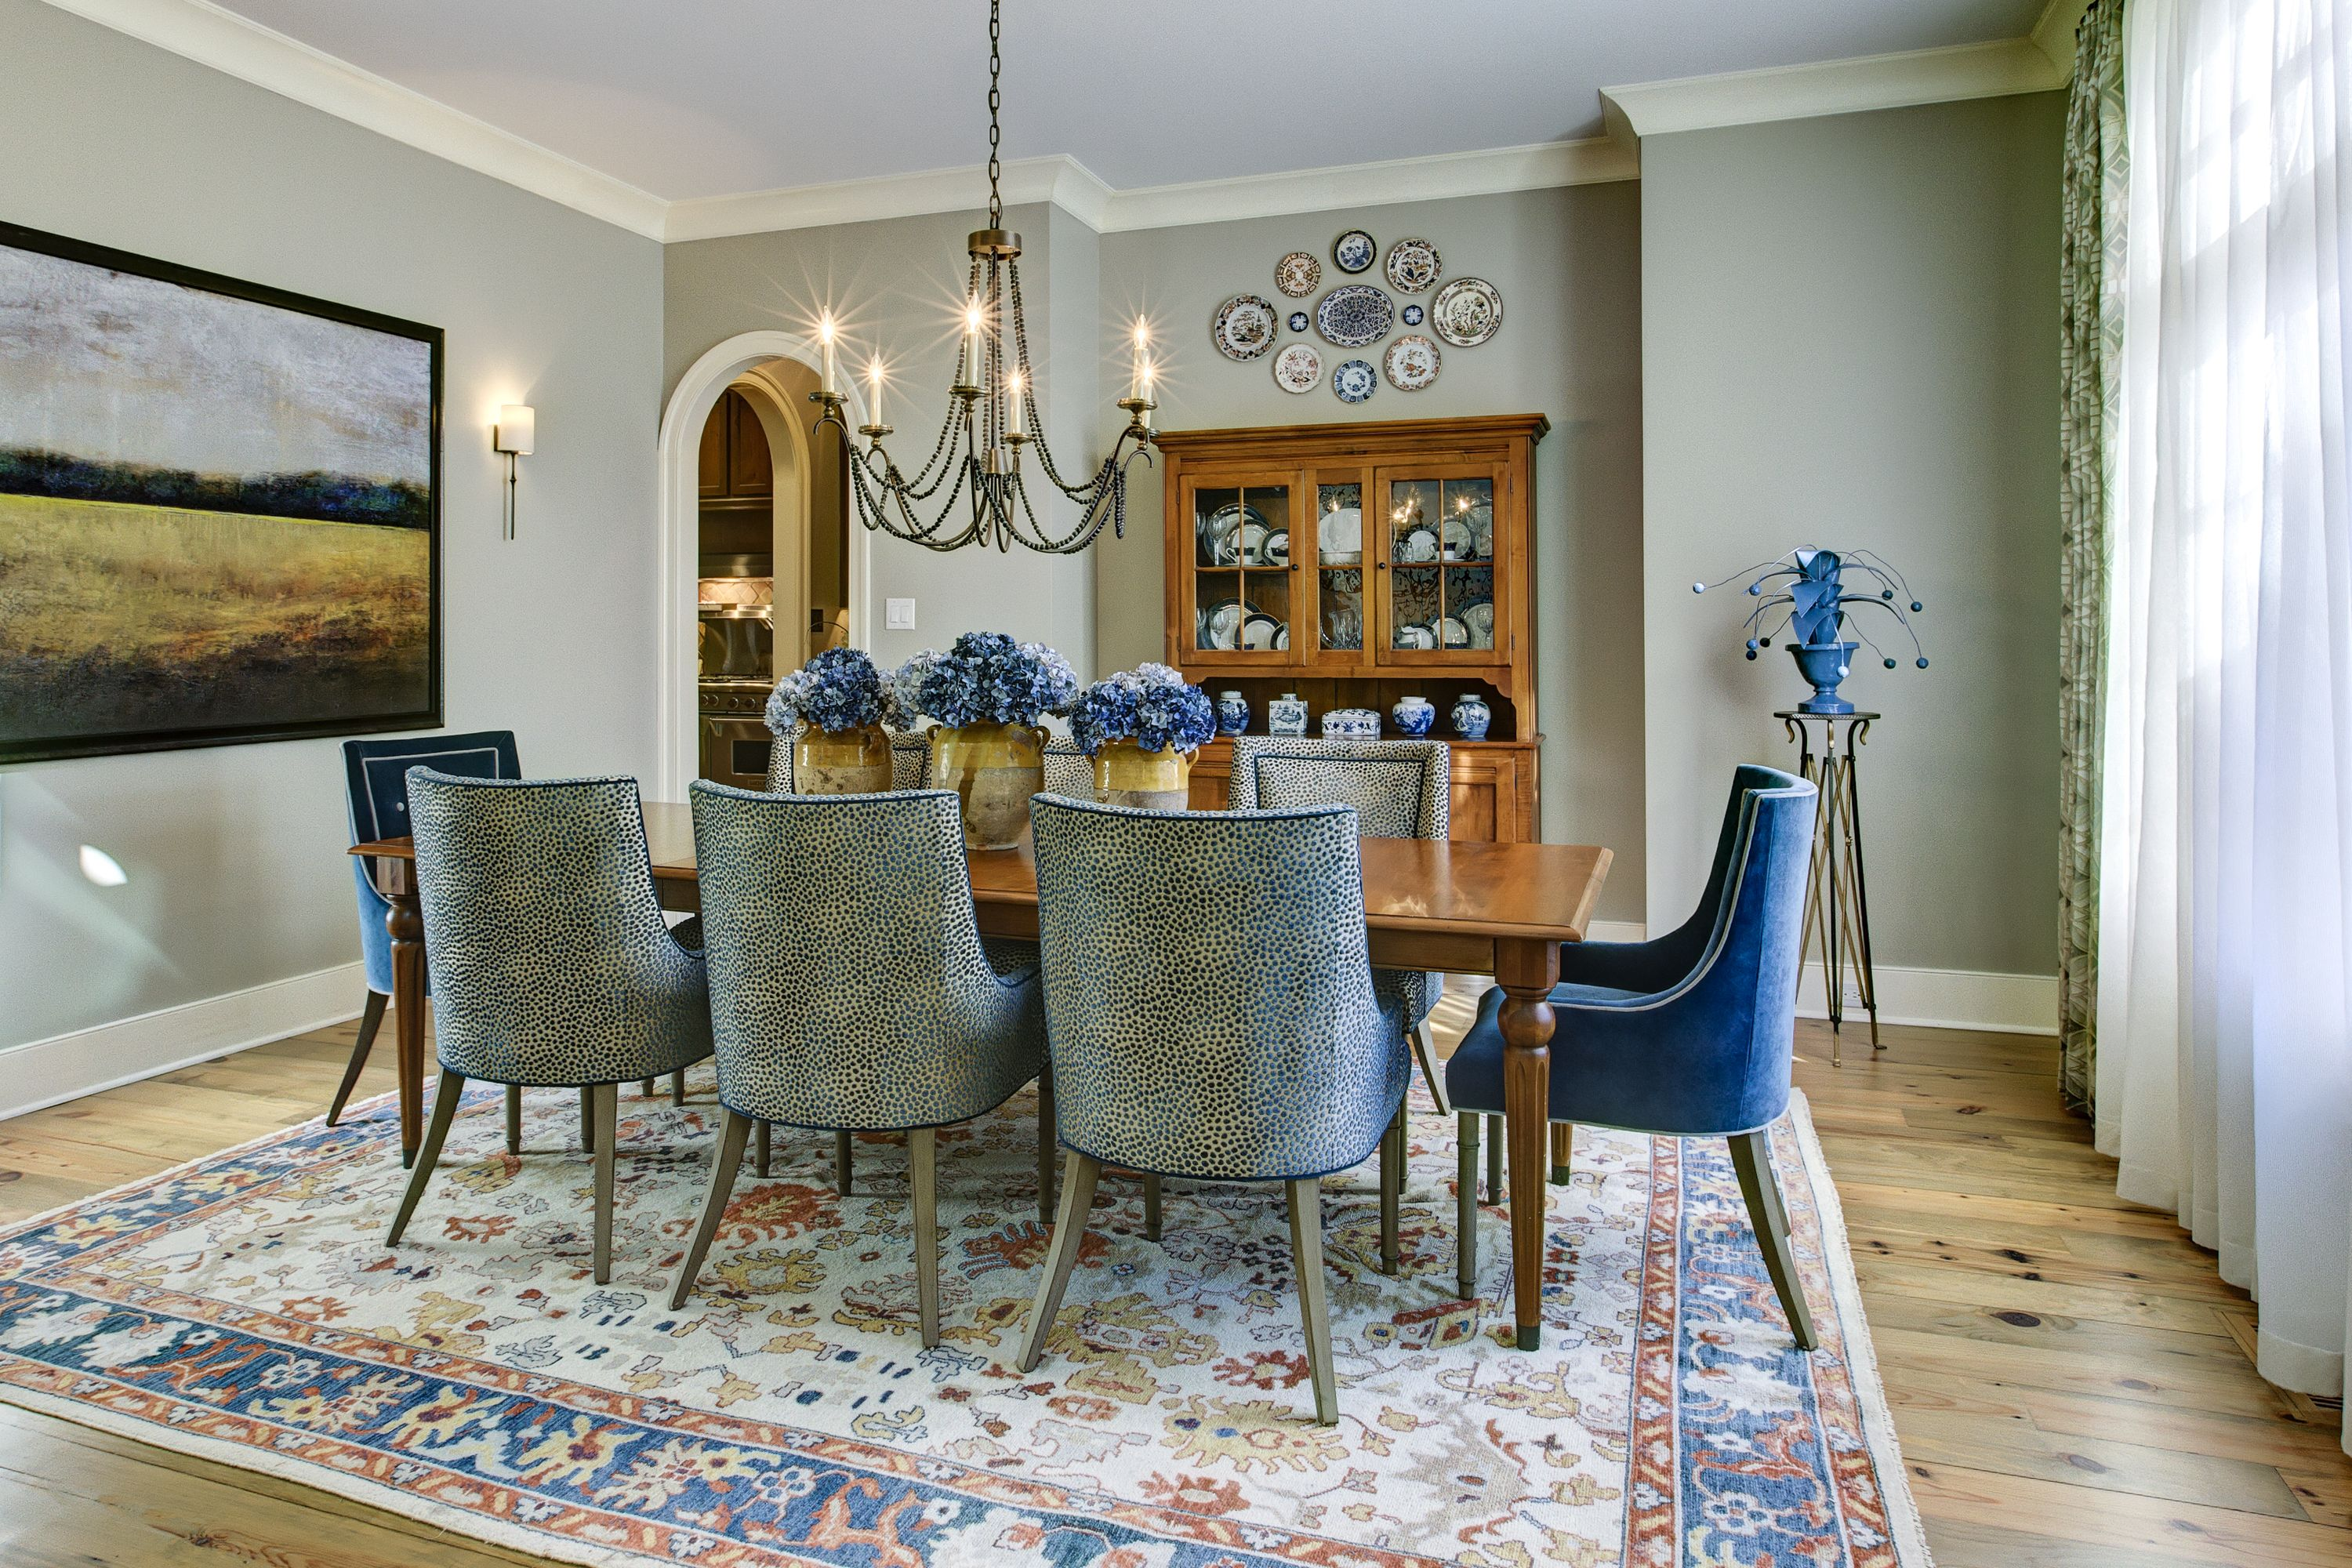 Dining Room Traditional Furniture Upholstered Dining Chairs Contrast Captains Chairs Upholstered Dining Chairs Traditional Furniture Interior Design Firms